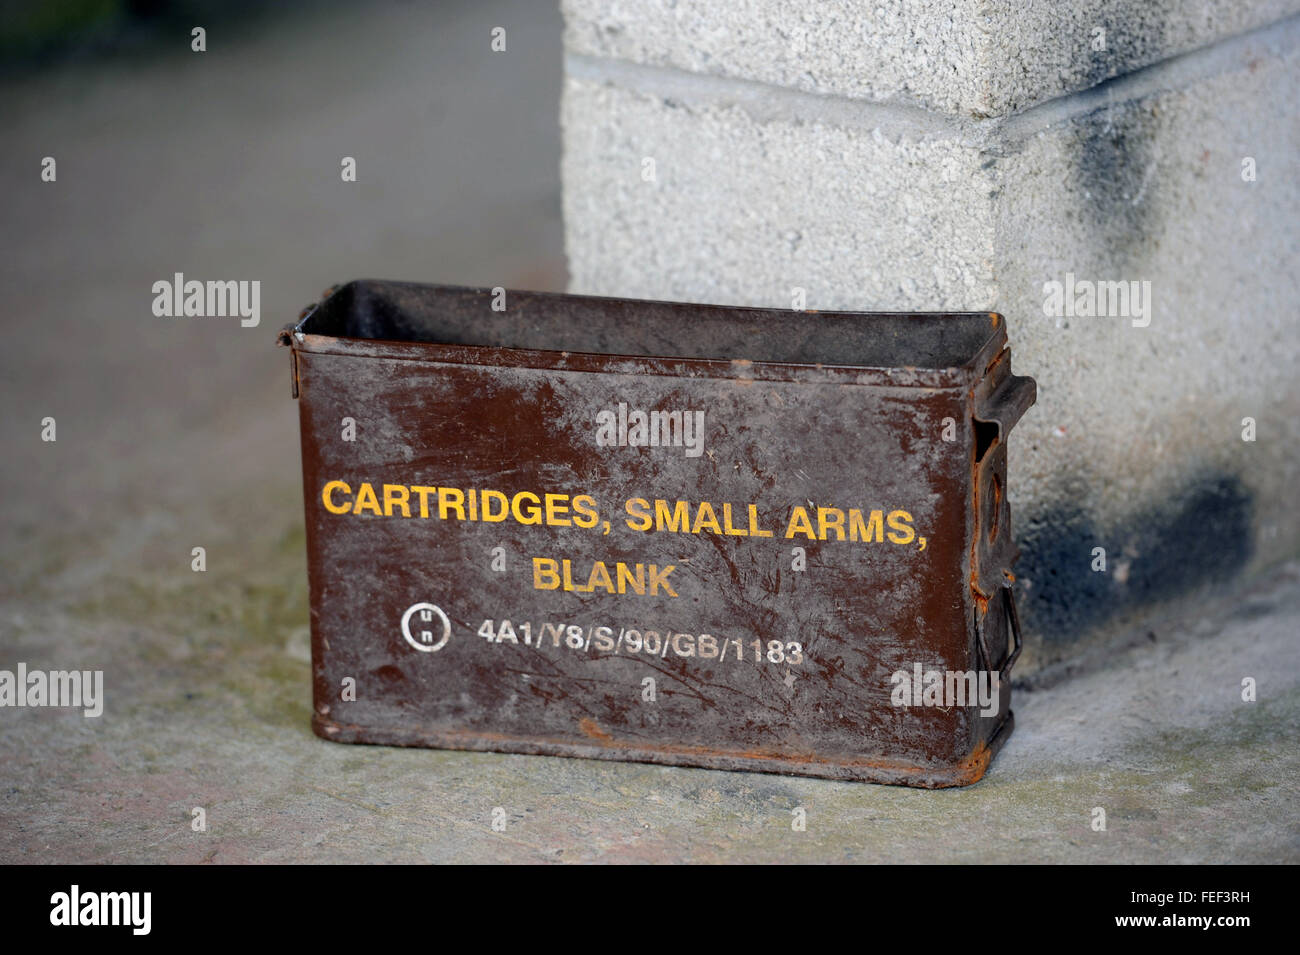 Discarded ammunition box at the MOD army training village near Brecon, Wales UK - Stock Image